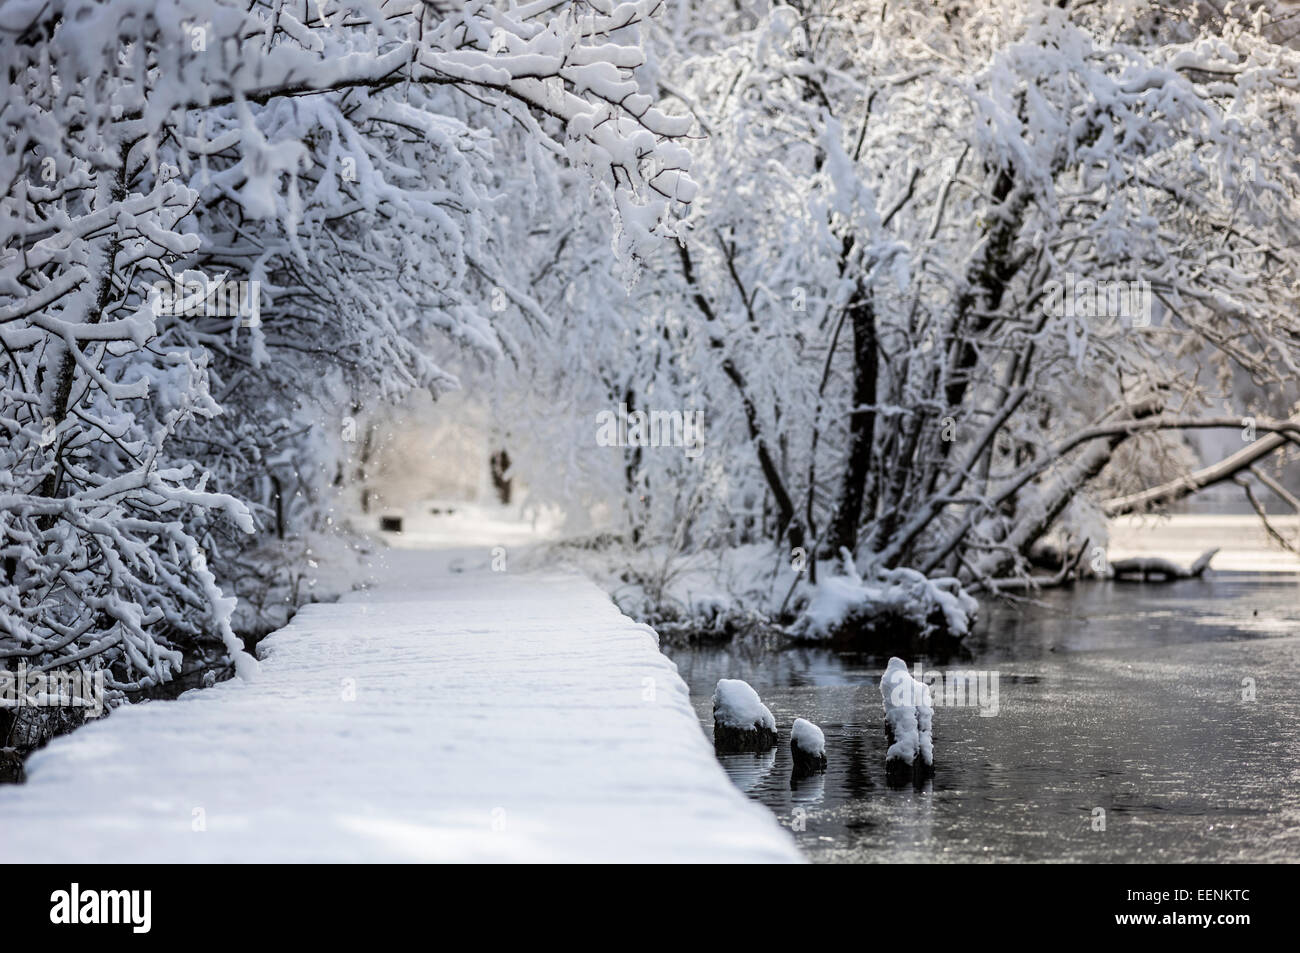 Snow-clad road near the water. - Stock Image